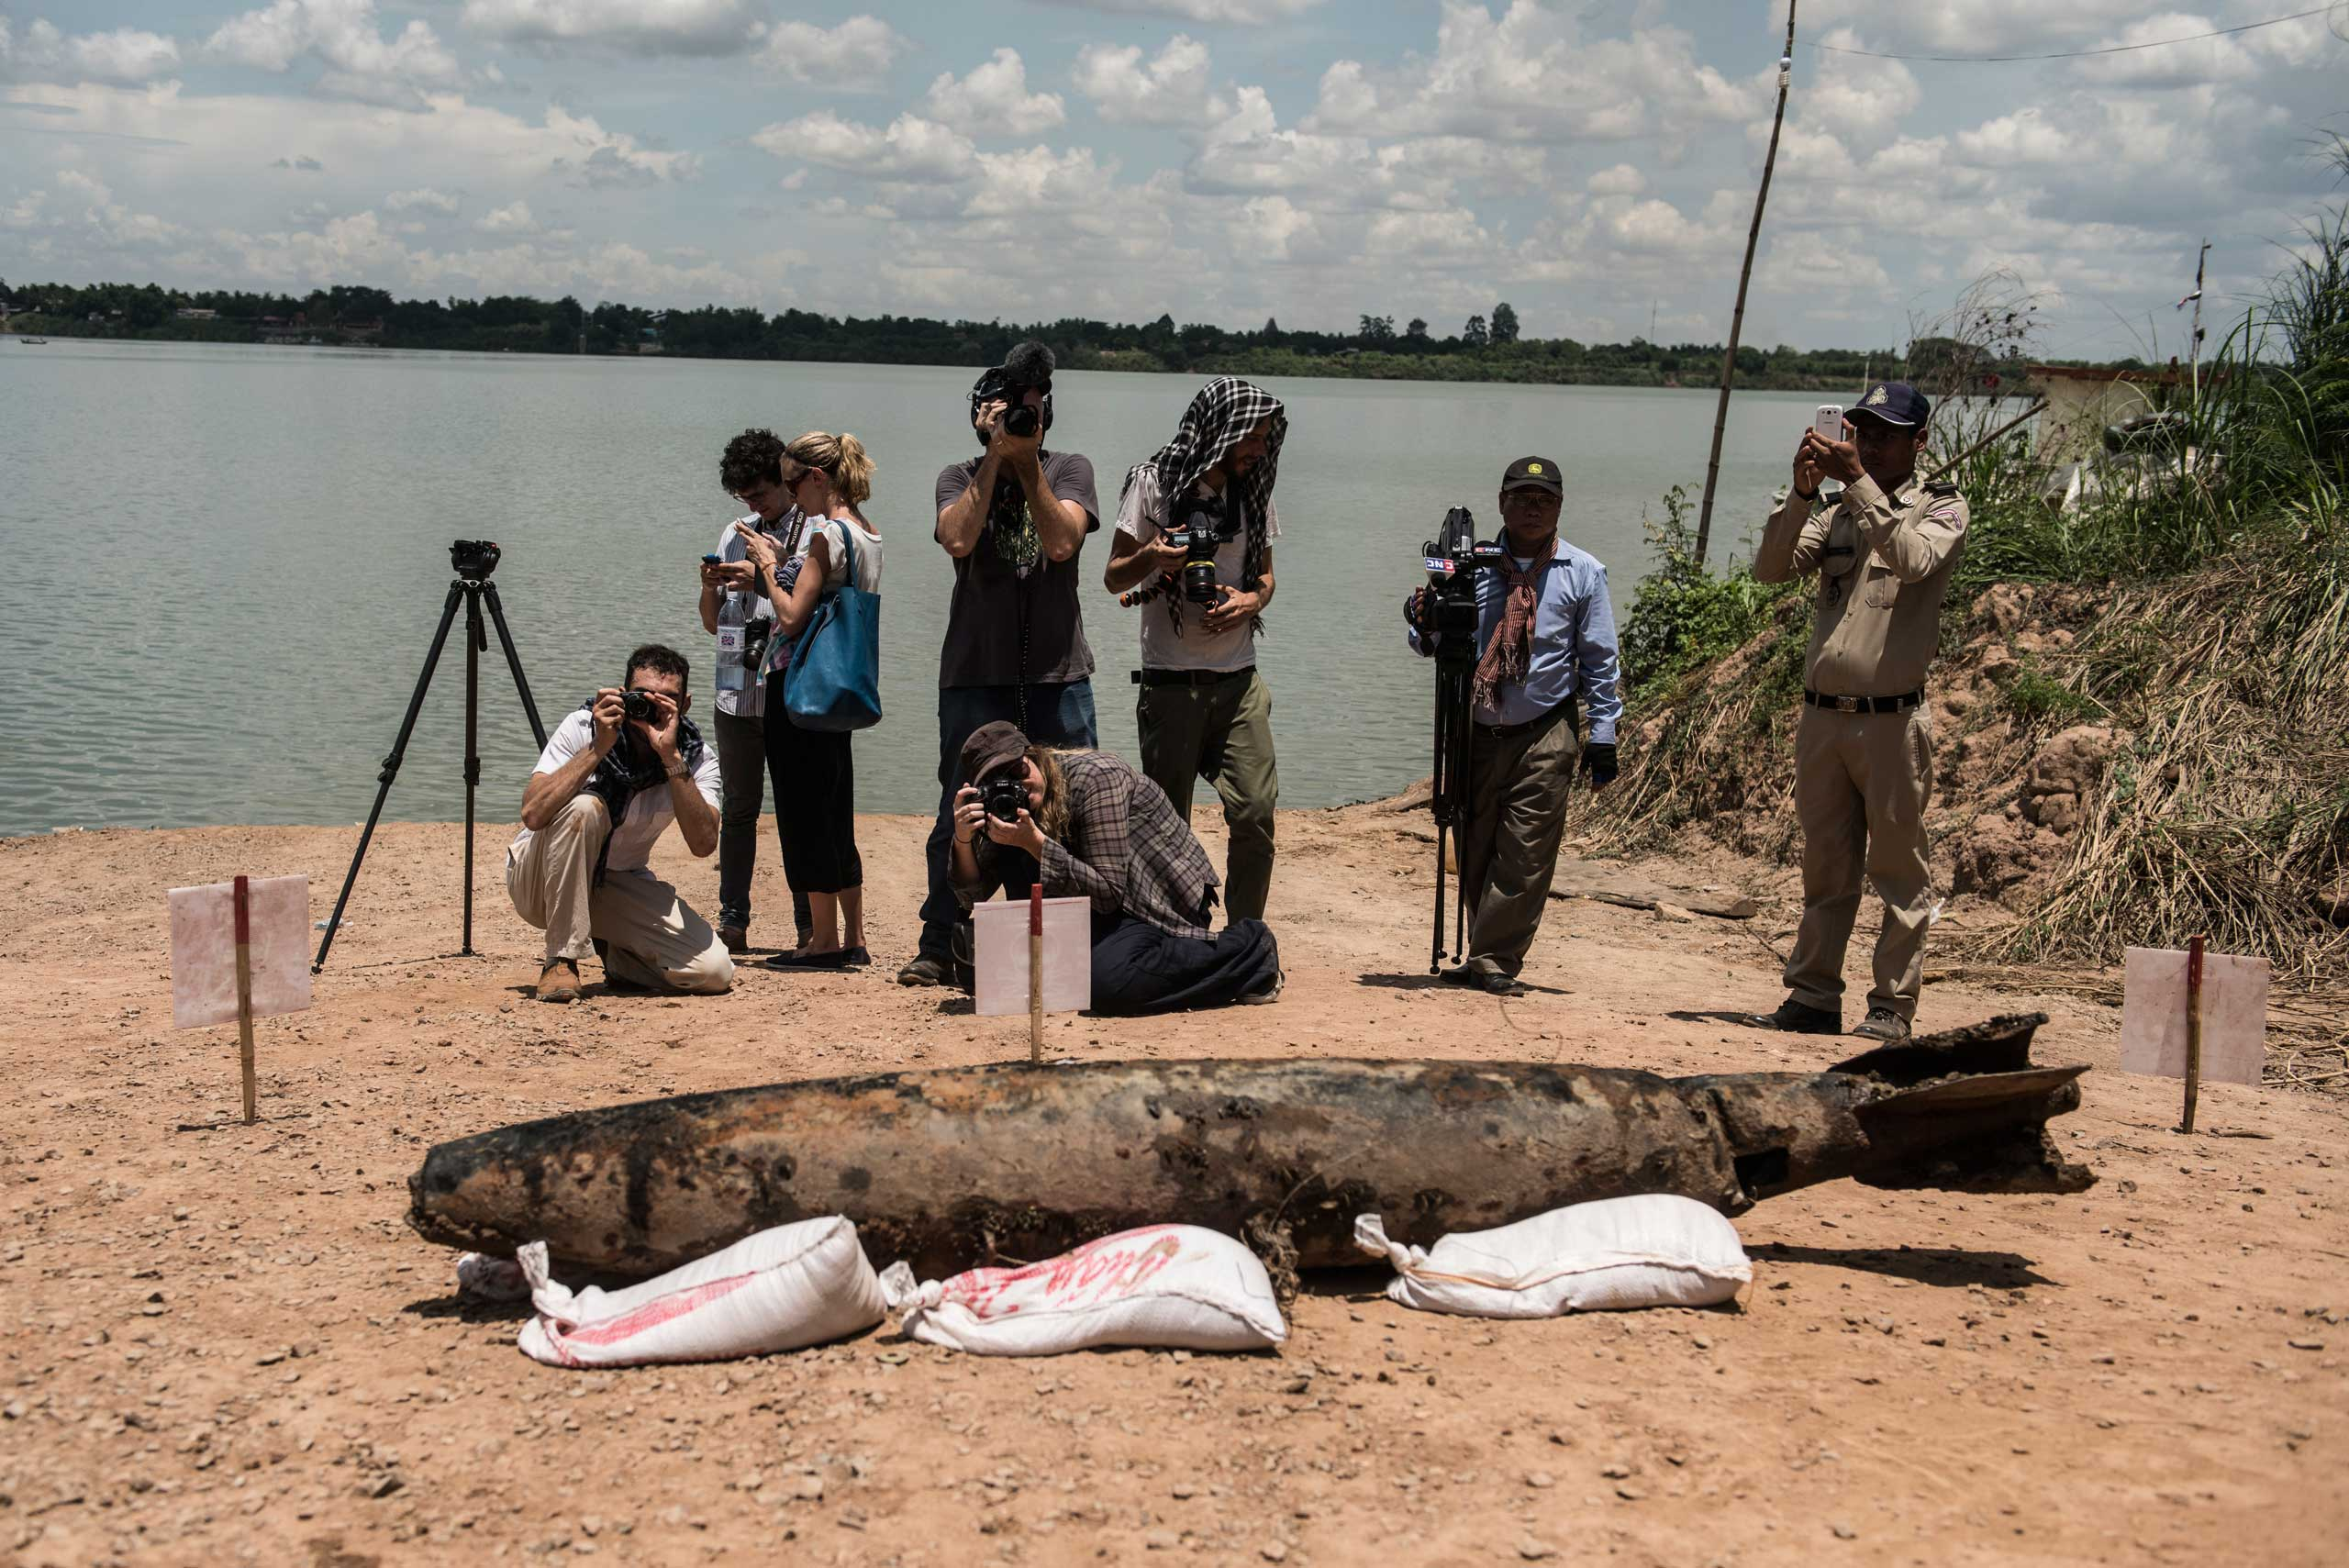 Journalists report on the MK82 Bomb which the diver team raised from the bottom of the Mekong River in March 2015.